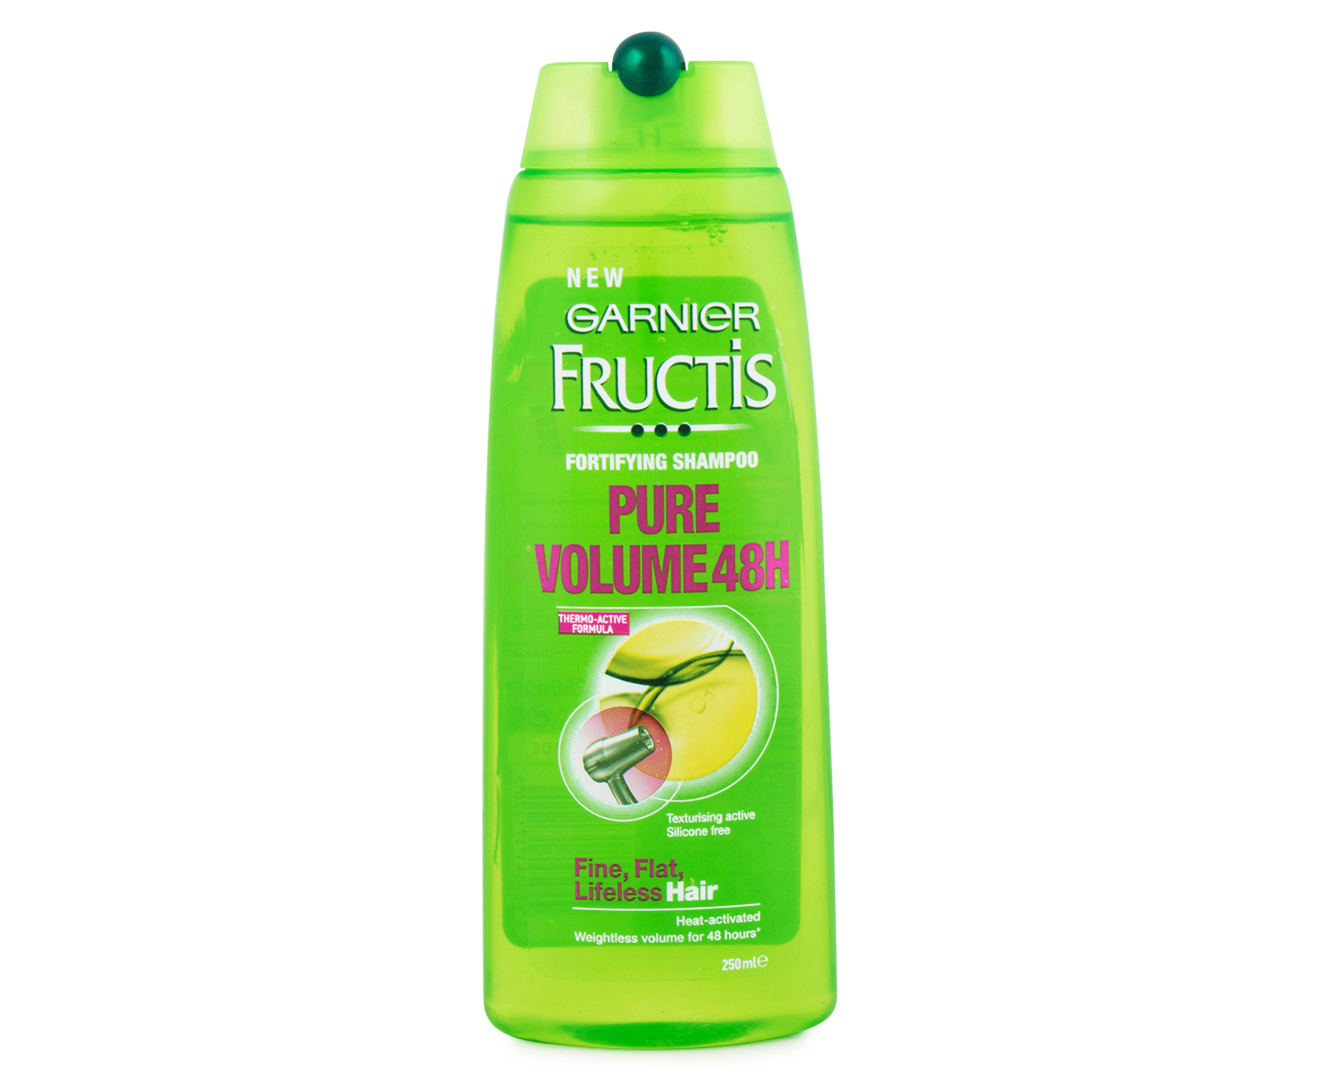 garnier fructis product analysis Daniel finamore martins global product manager hair care - garnier fructis  location paris area, france industry cosmetics.